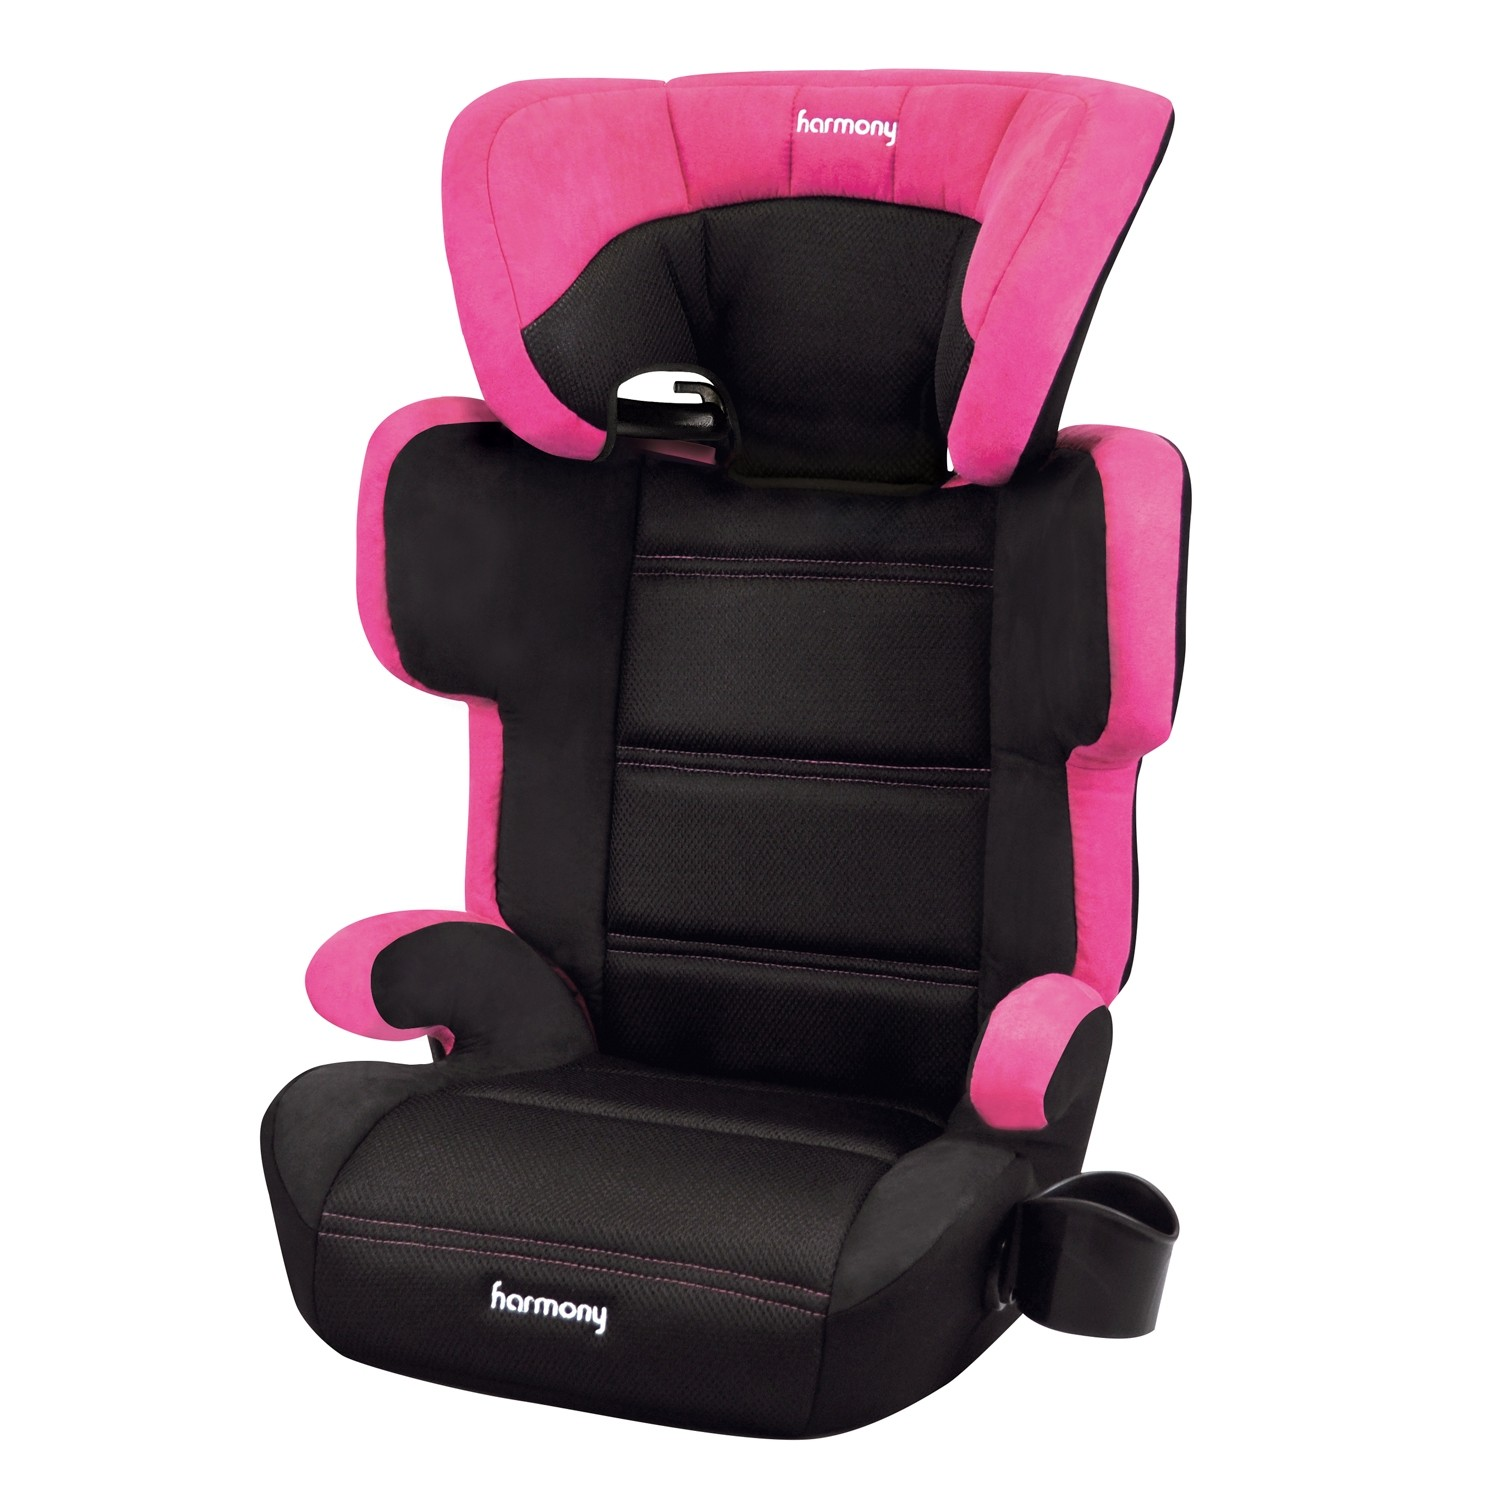 Dreamtime Elite Comfort Booster Car Seat - Rich Raspberry